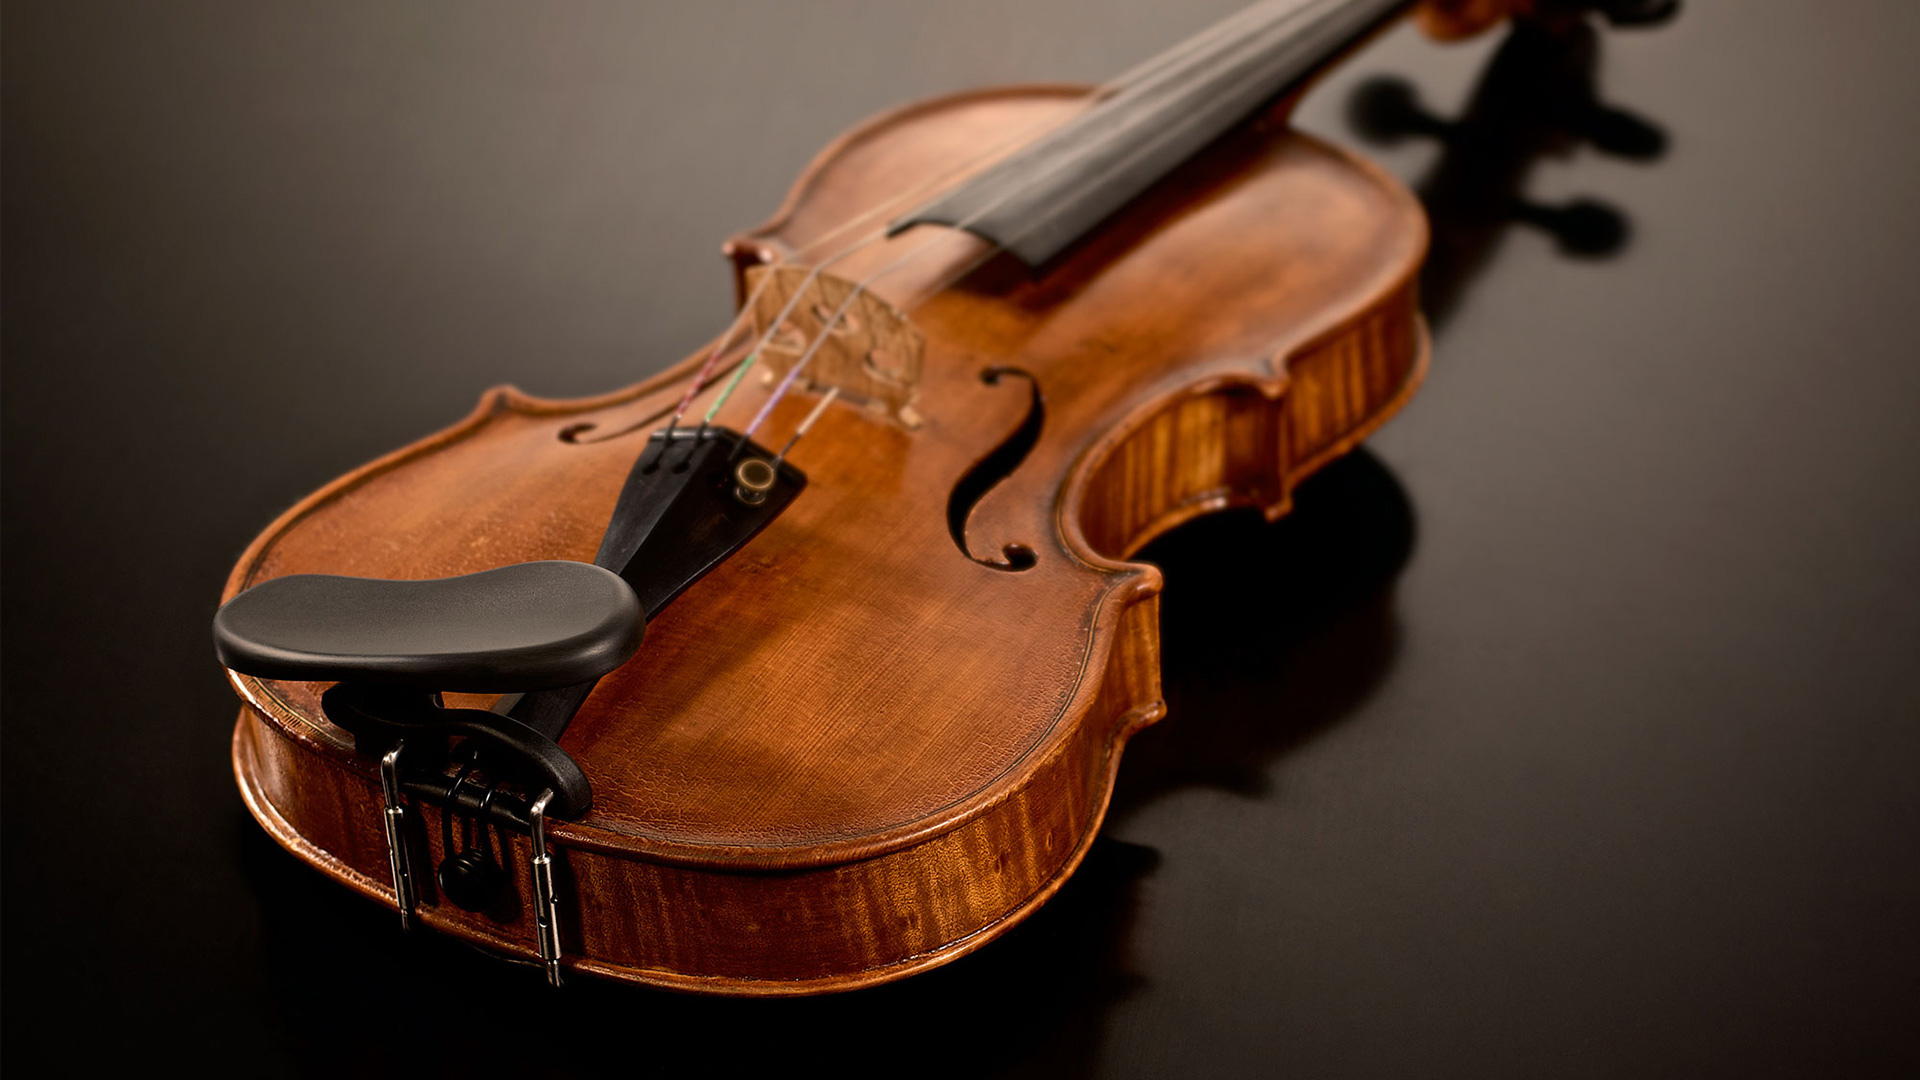 kreddle ergonomic violin chin rest